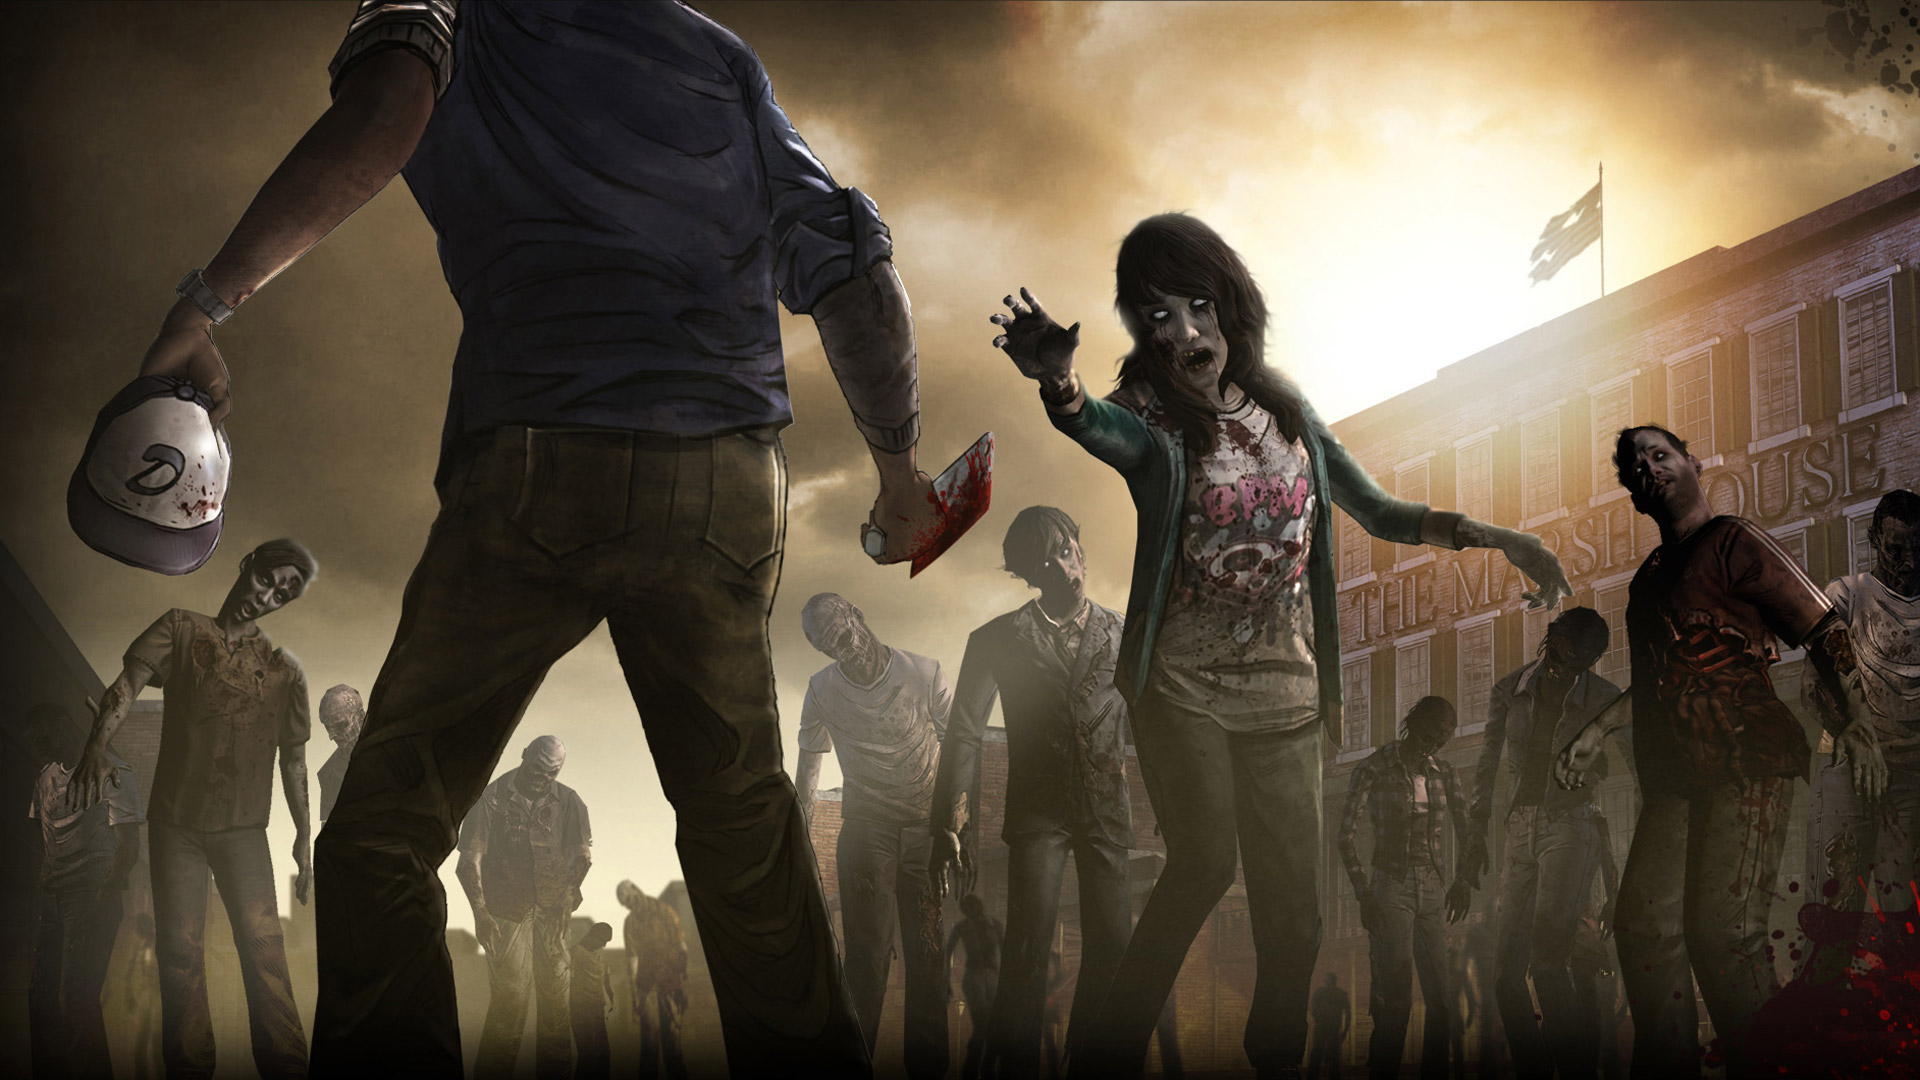 Free The Walking Dead Wallpaper in 1920x1080